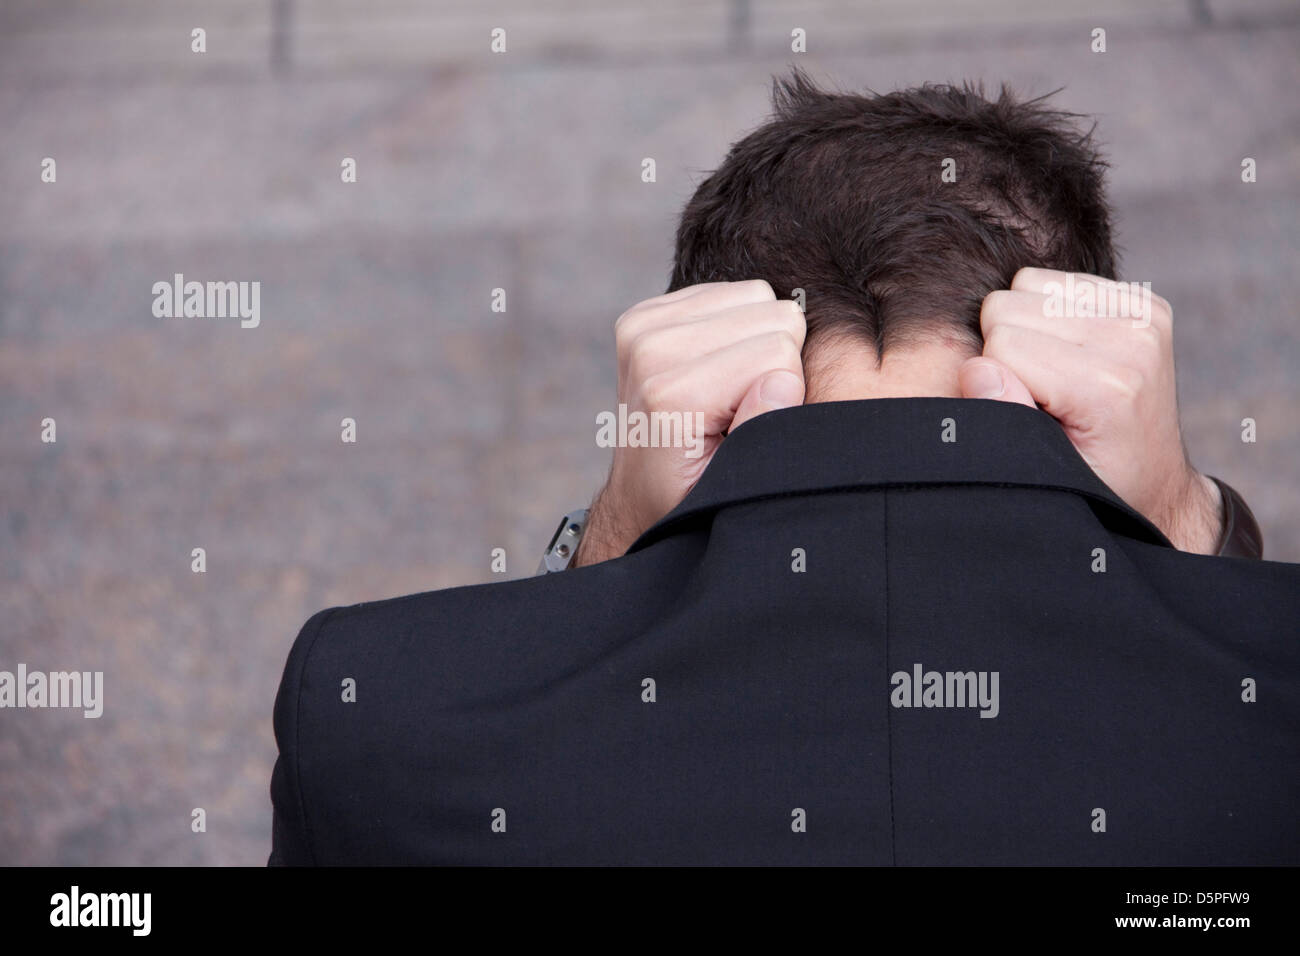 man in turmoil - Stock Image